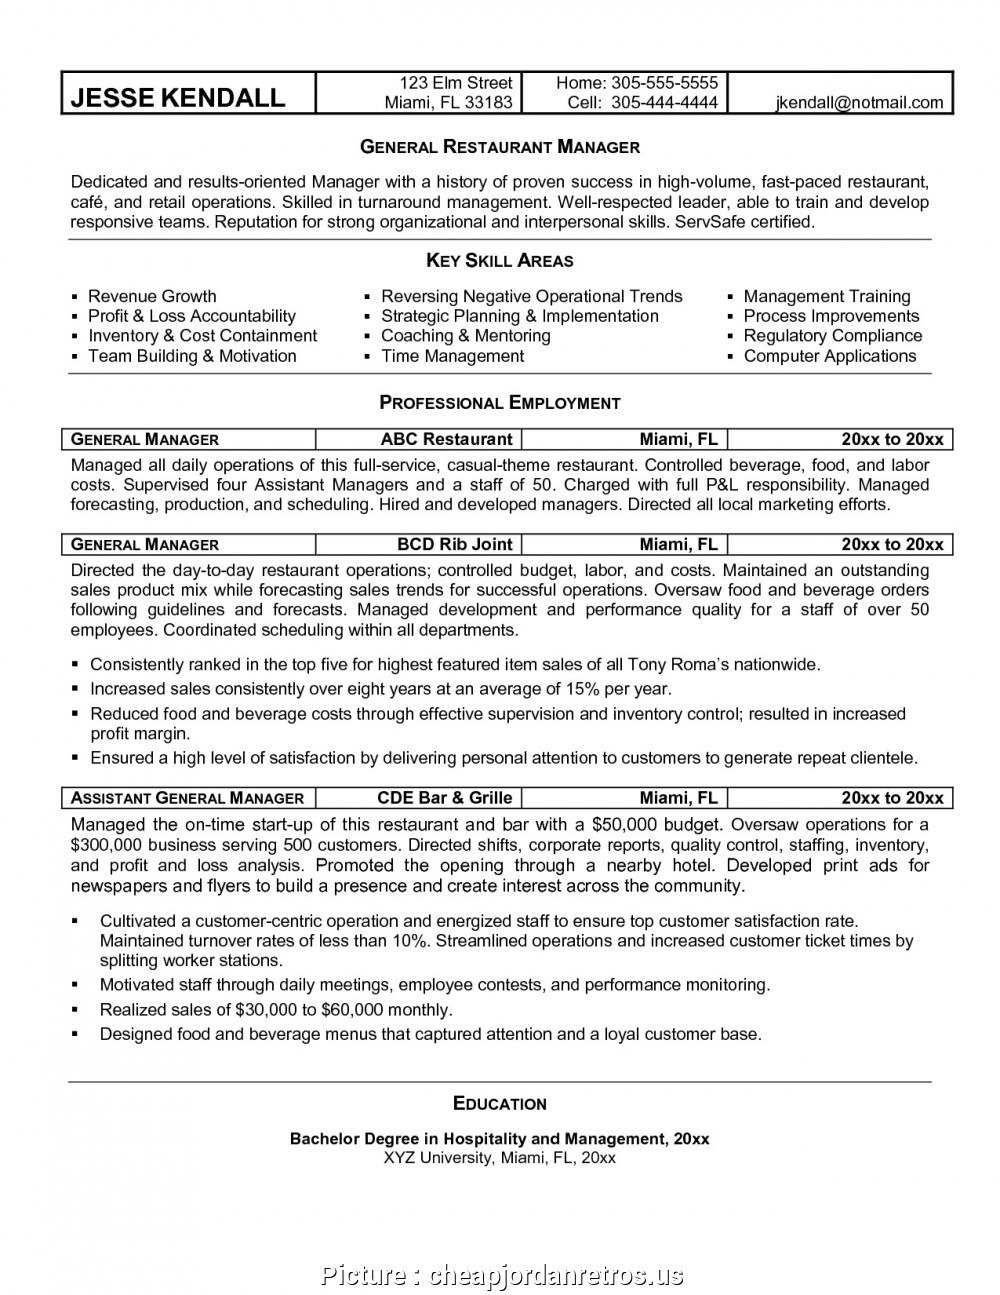 Hospitality Business Plan Template Restaurant Excele Resume Pertaining To University Of Miami Powerpoint Template